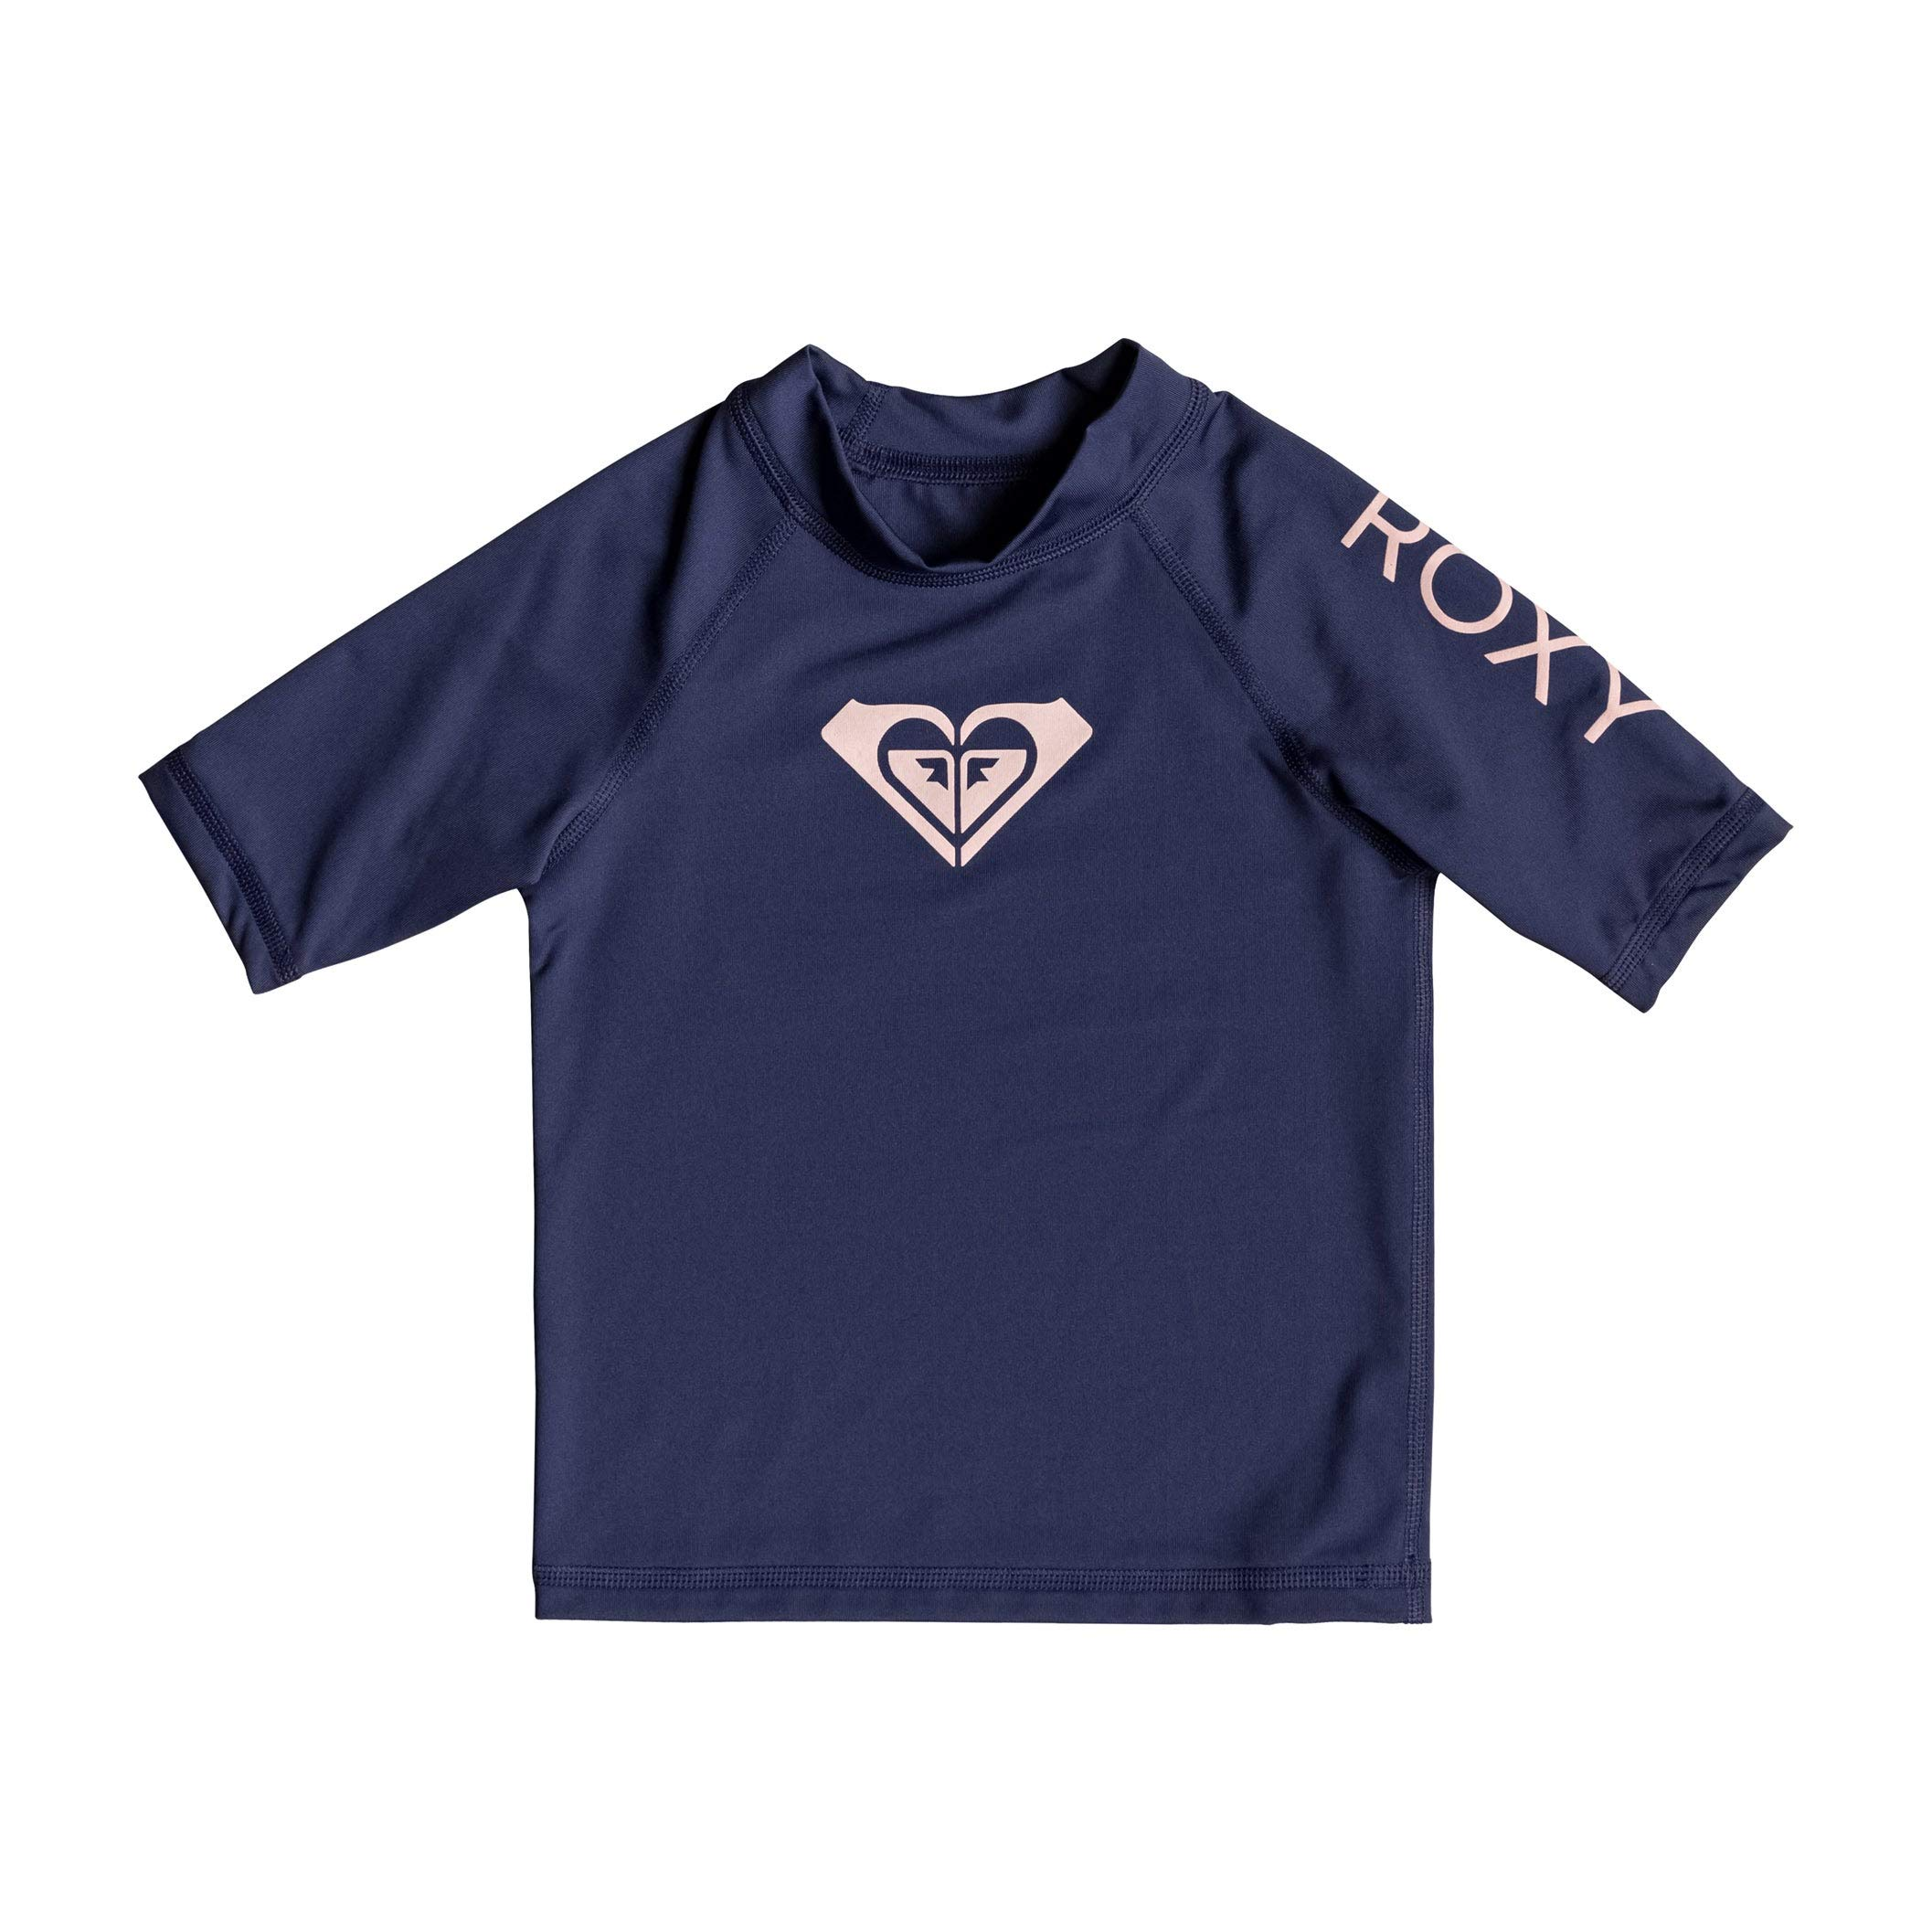 Roxy Whole Hearted Short Sleeve Girls Rash Vest Age 3 Medieval Blue by Roxy